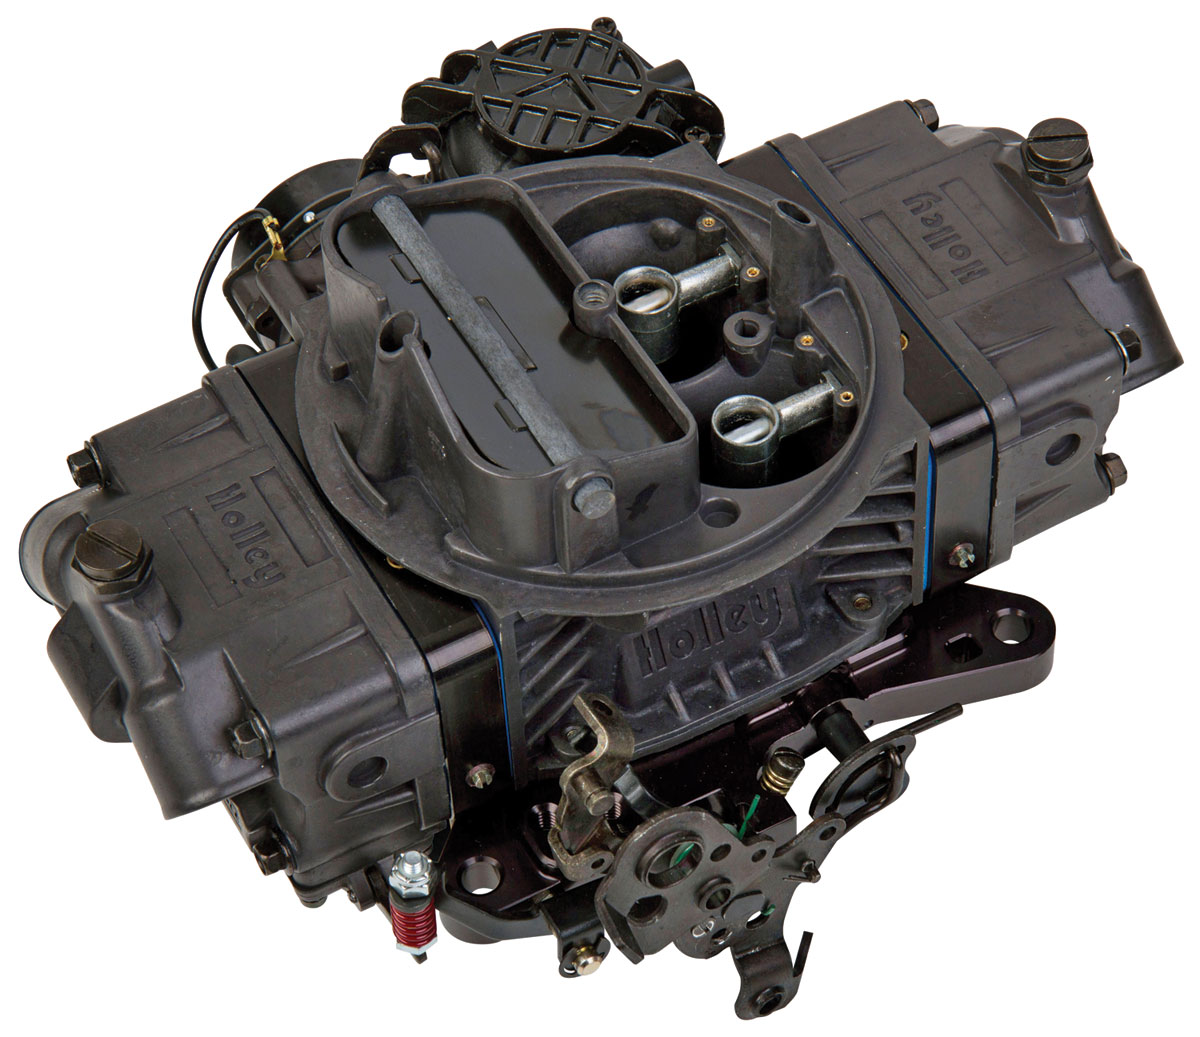 Photo of Carburetors, Holley, Ultra Street Avenger 670 Cfm black billet aluminum finish